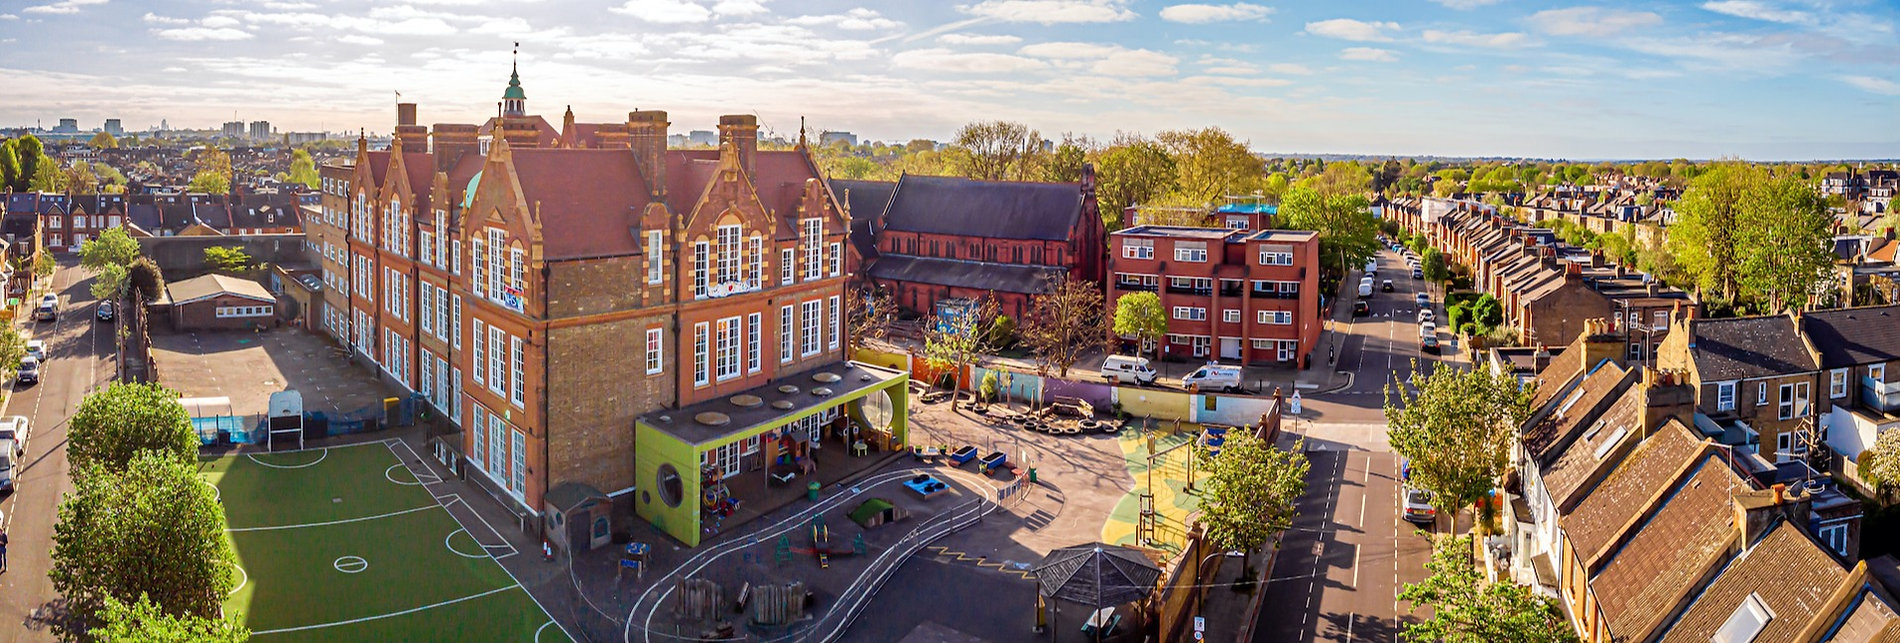 London School drone image